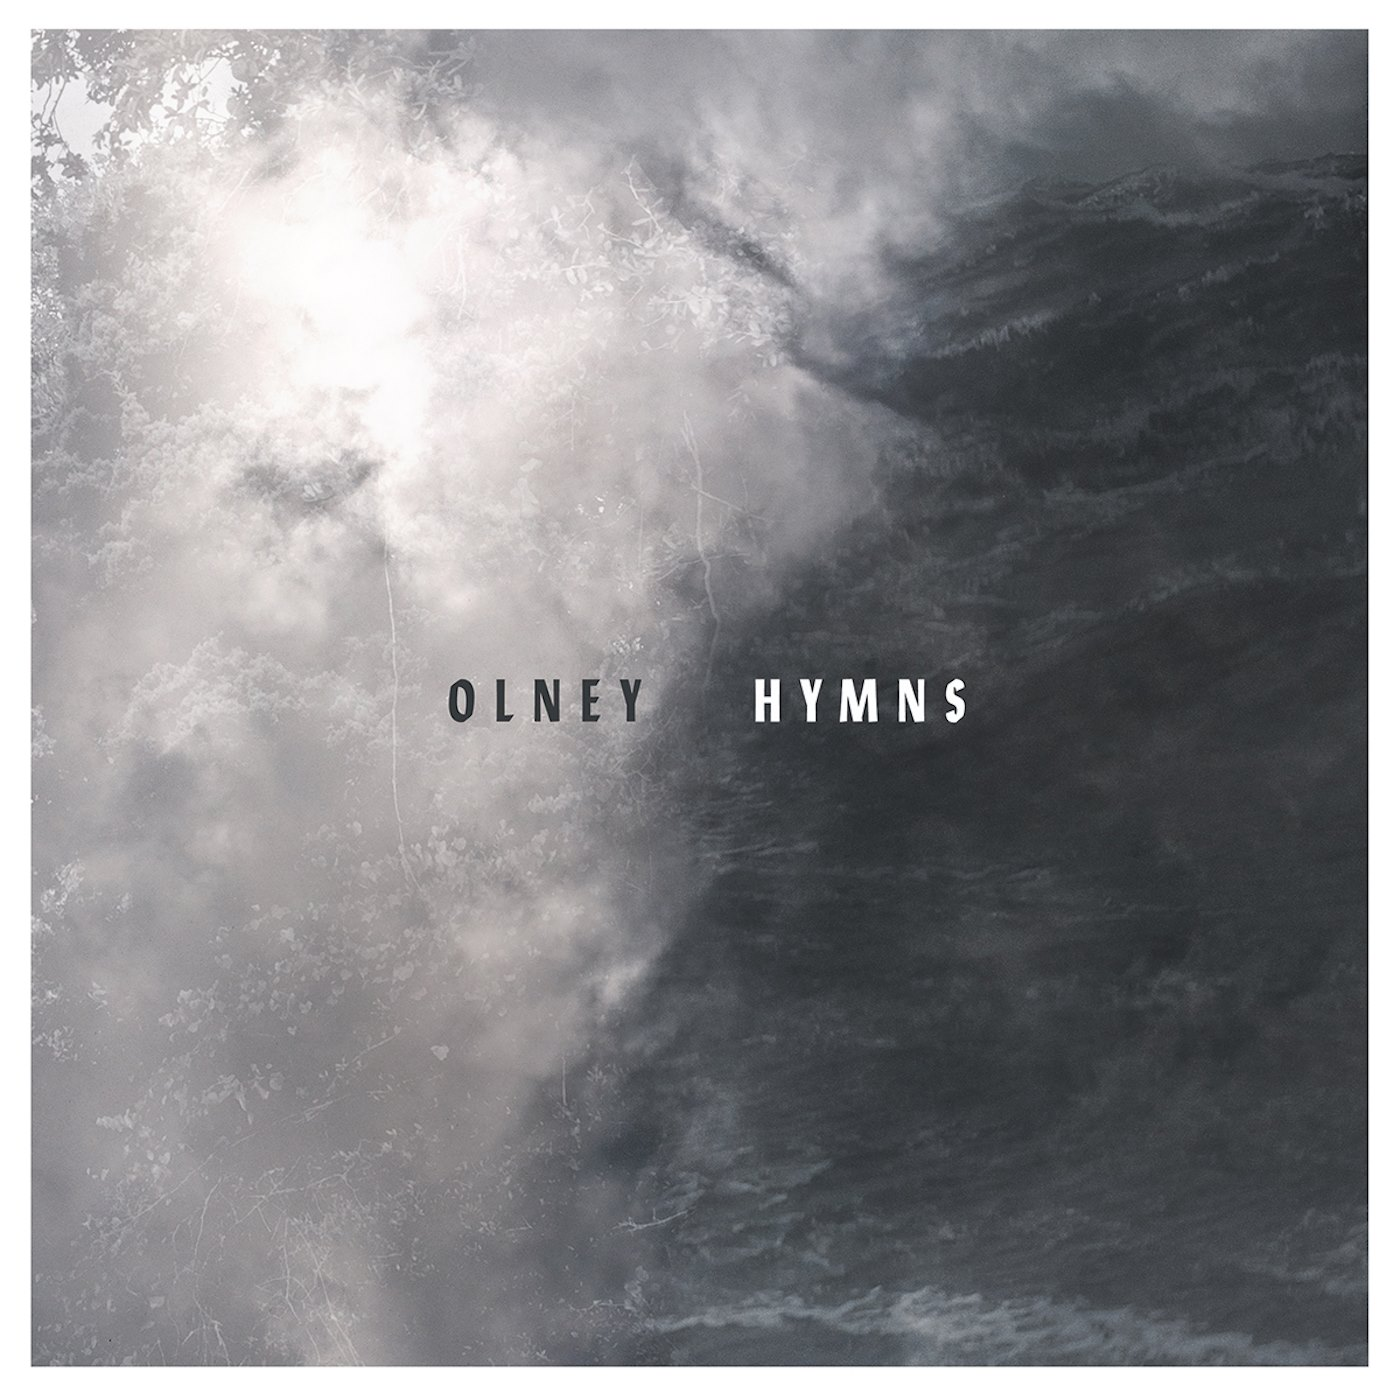 The Olney Hymns